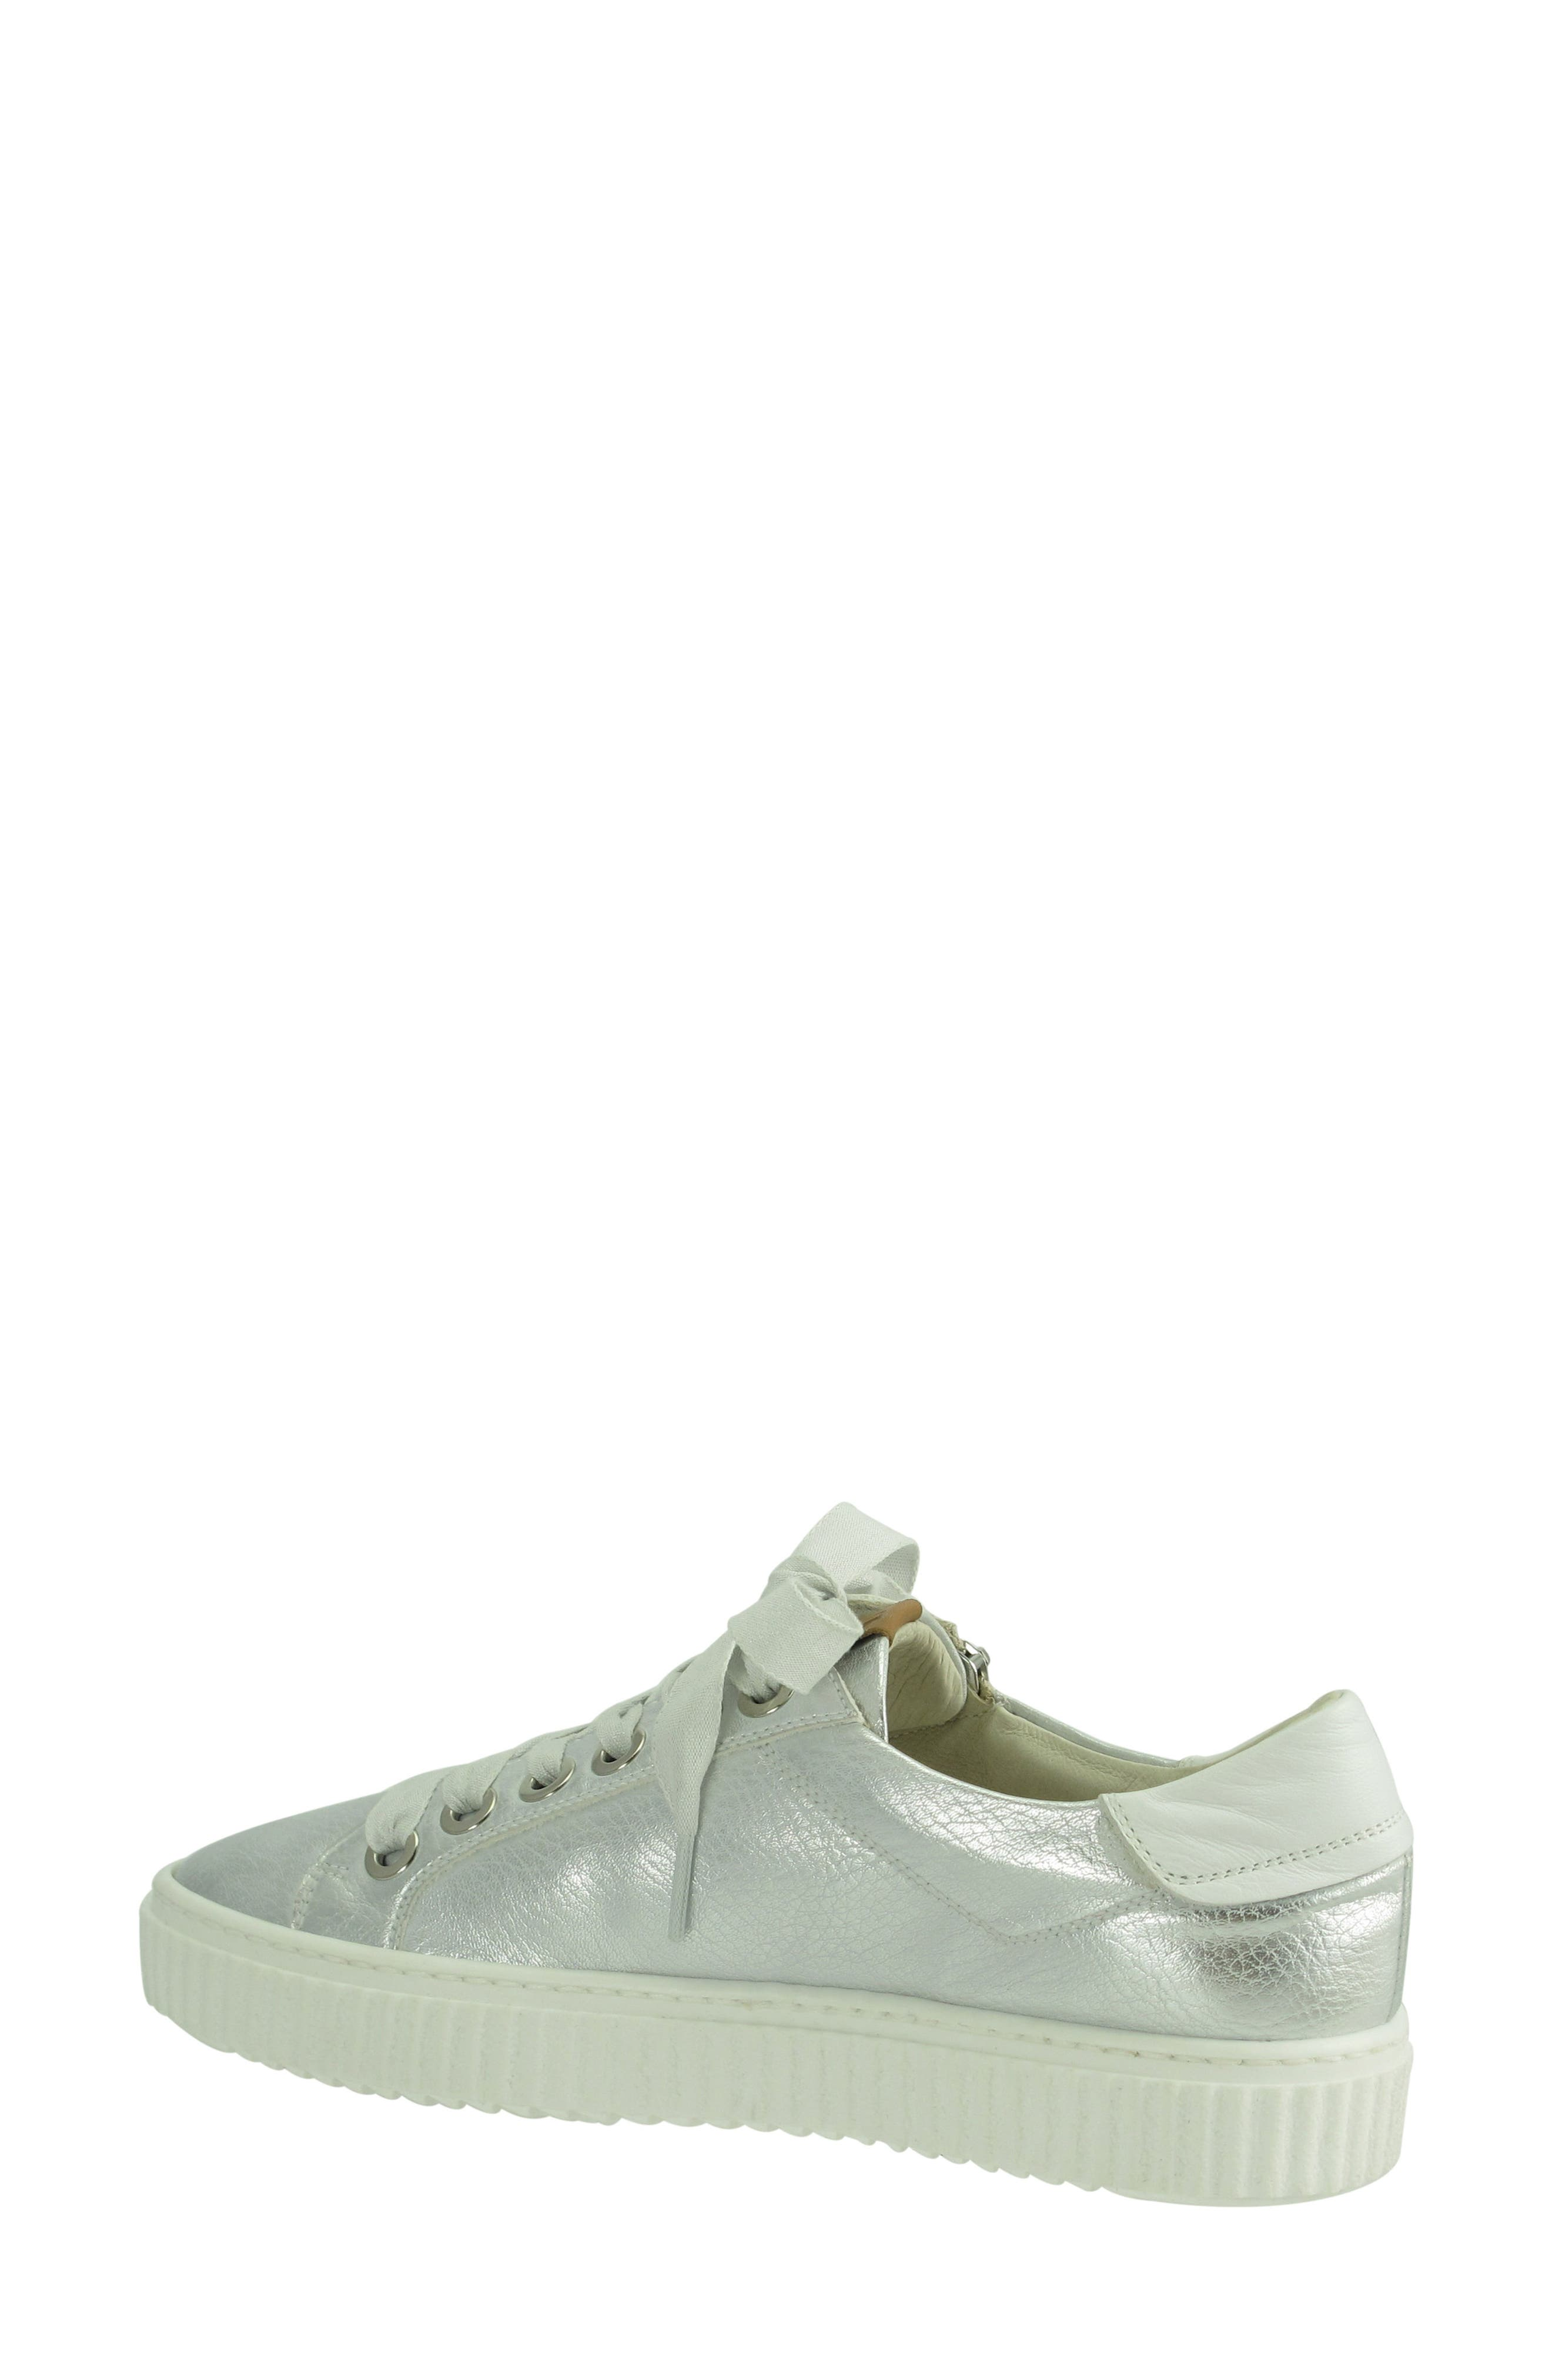 Posey Sneaker,                             Alternate thumbnail 2, color,                             Silver Leather